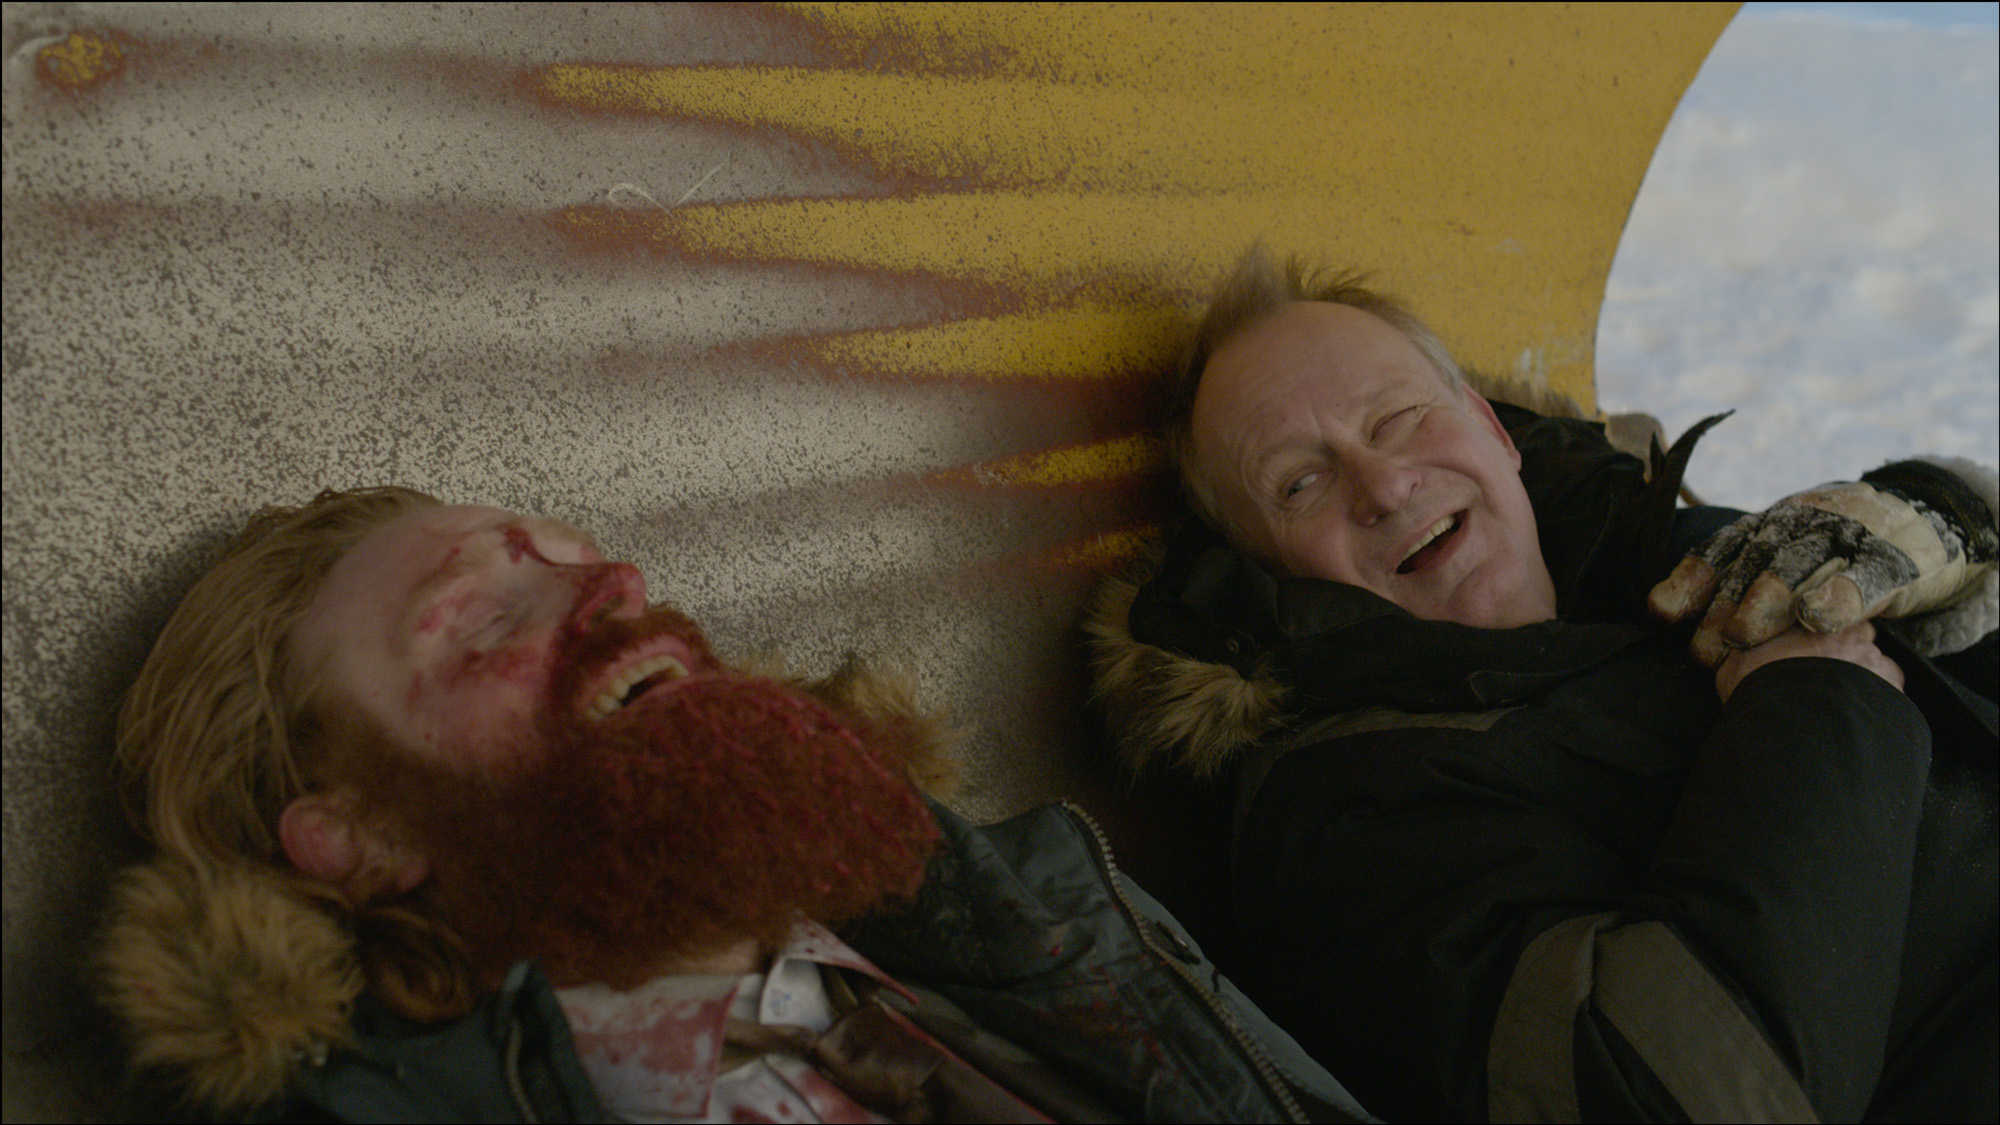 In Order of Disappearance (image 2)